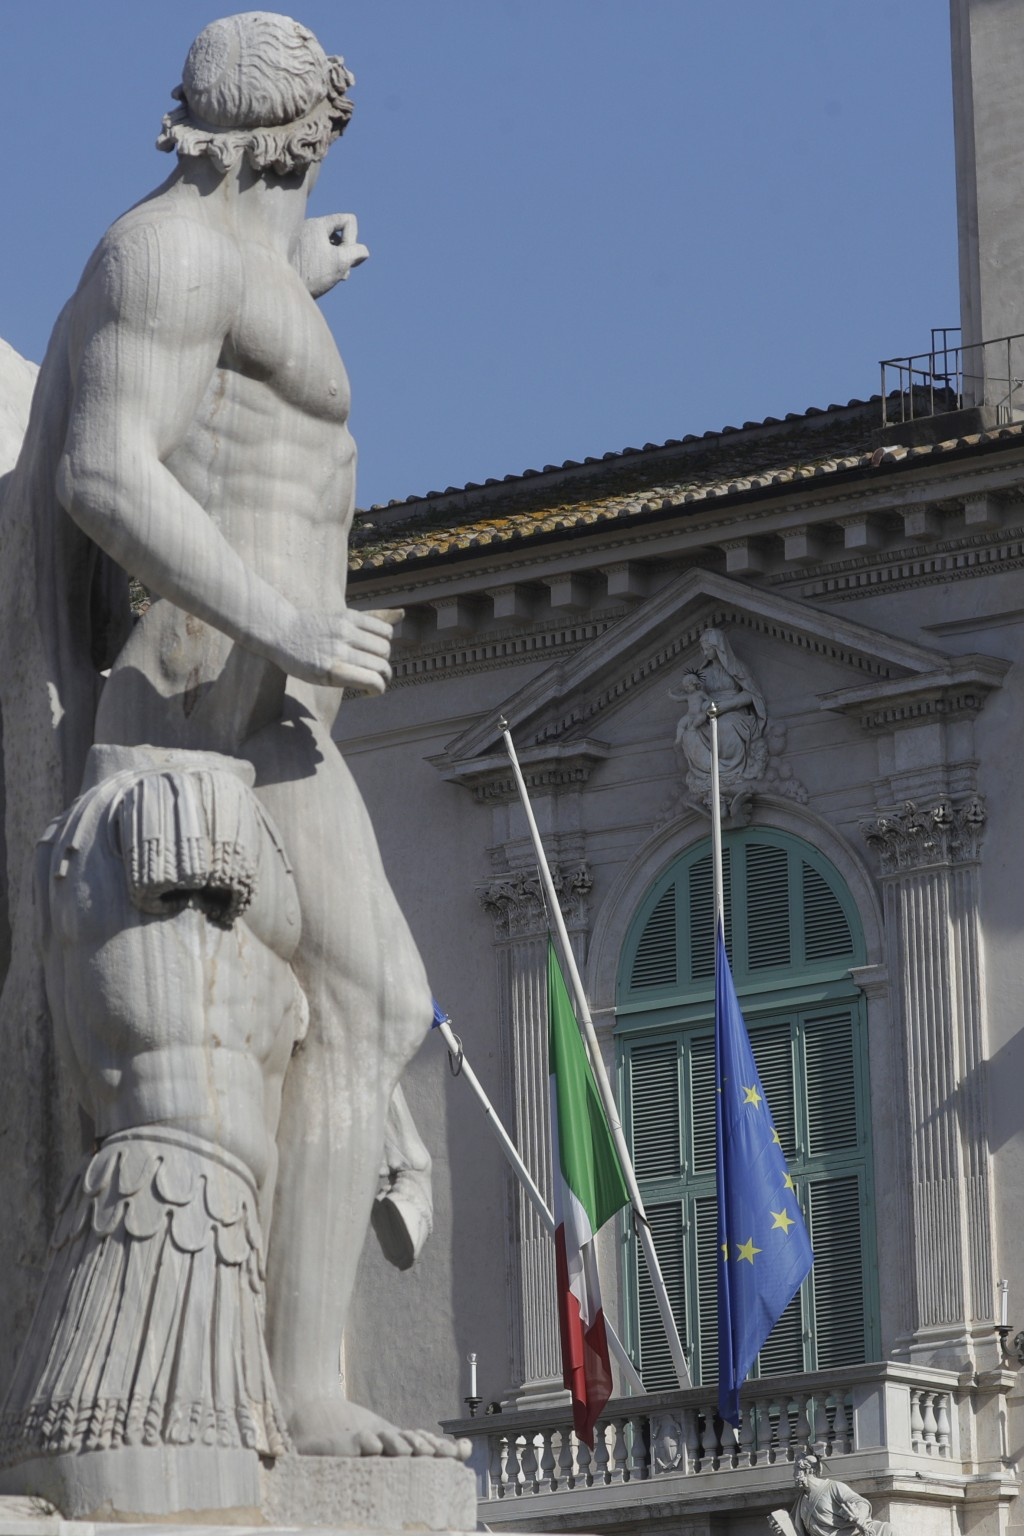 The flags of Italy and the EU, right, fly at half mast outside the Quirinale, Presidential palace, in Rome, Tuesday, Feb. 23, 2021. The Italian ambass...